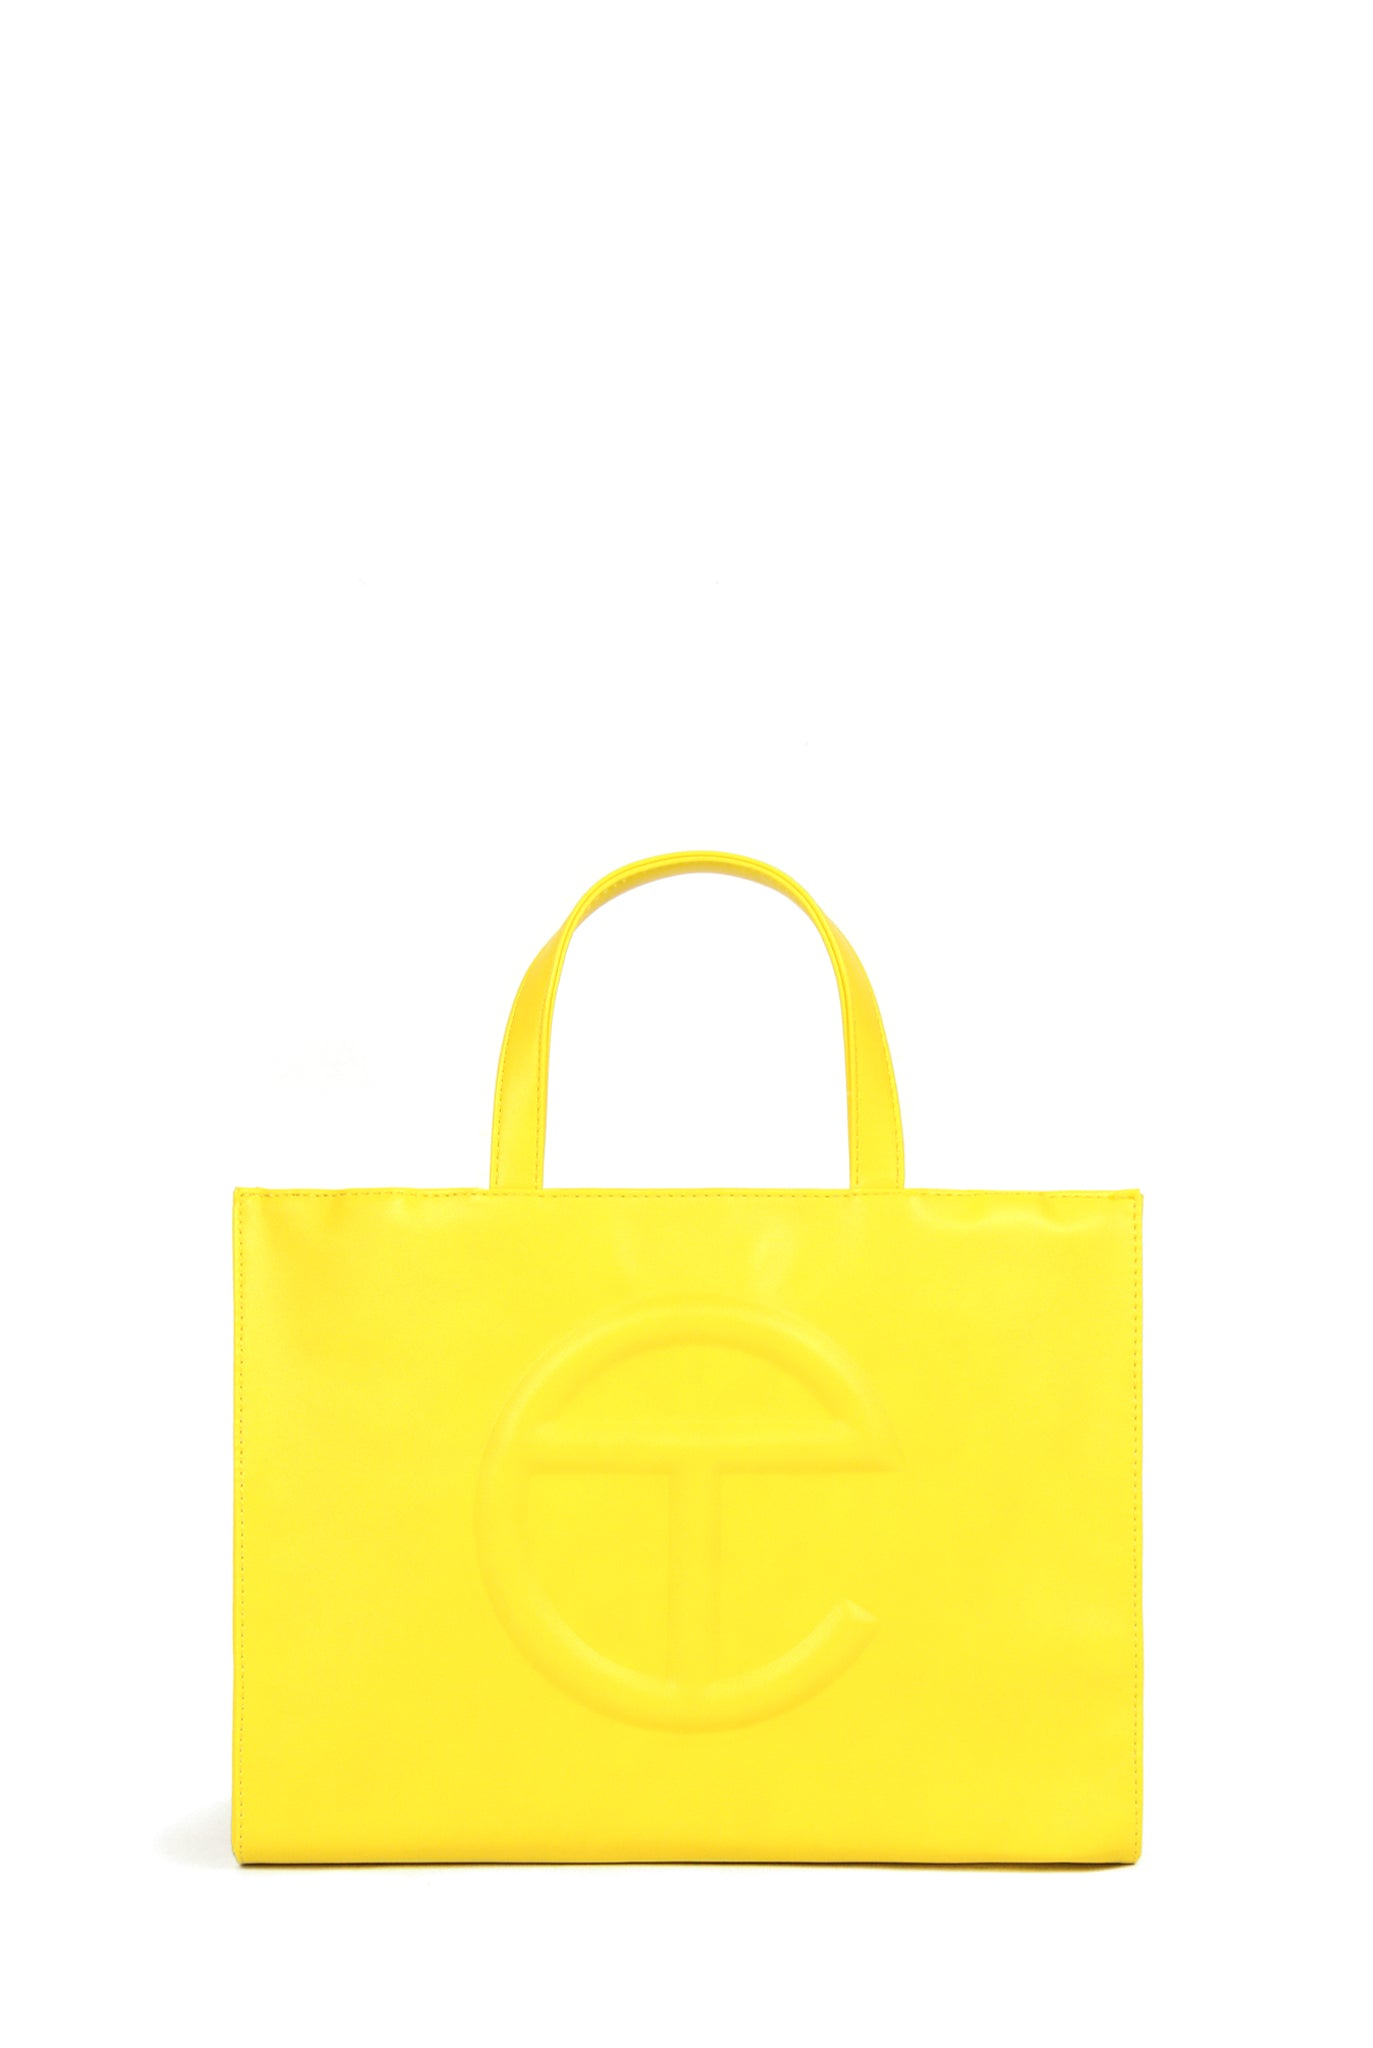 Telfar Medium Shopping Bag, Yellow